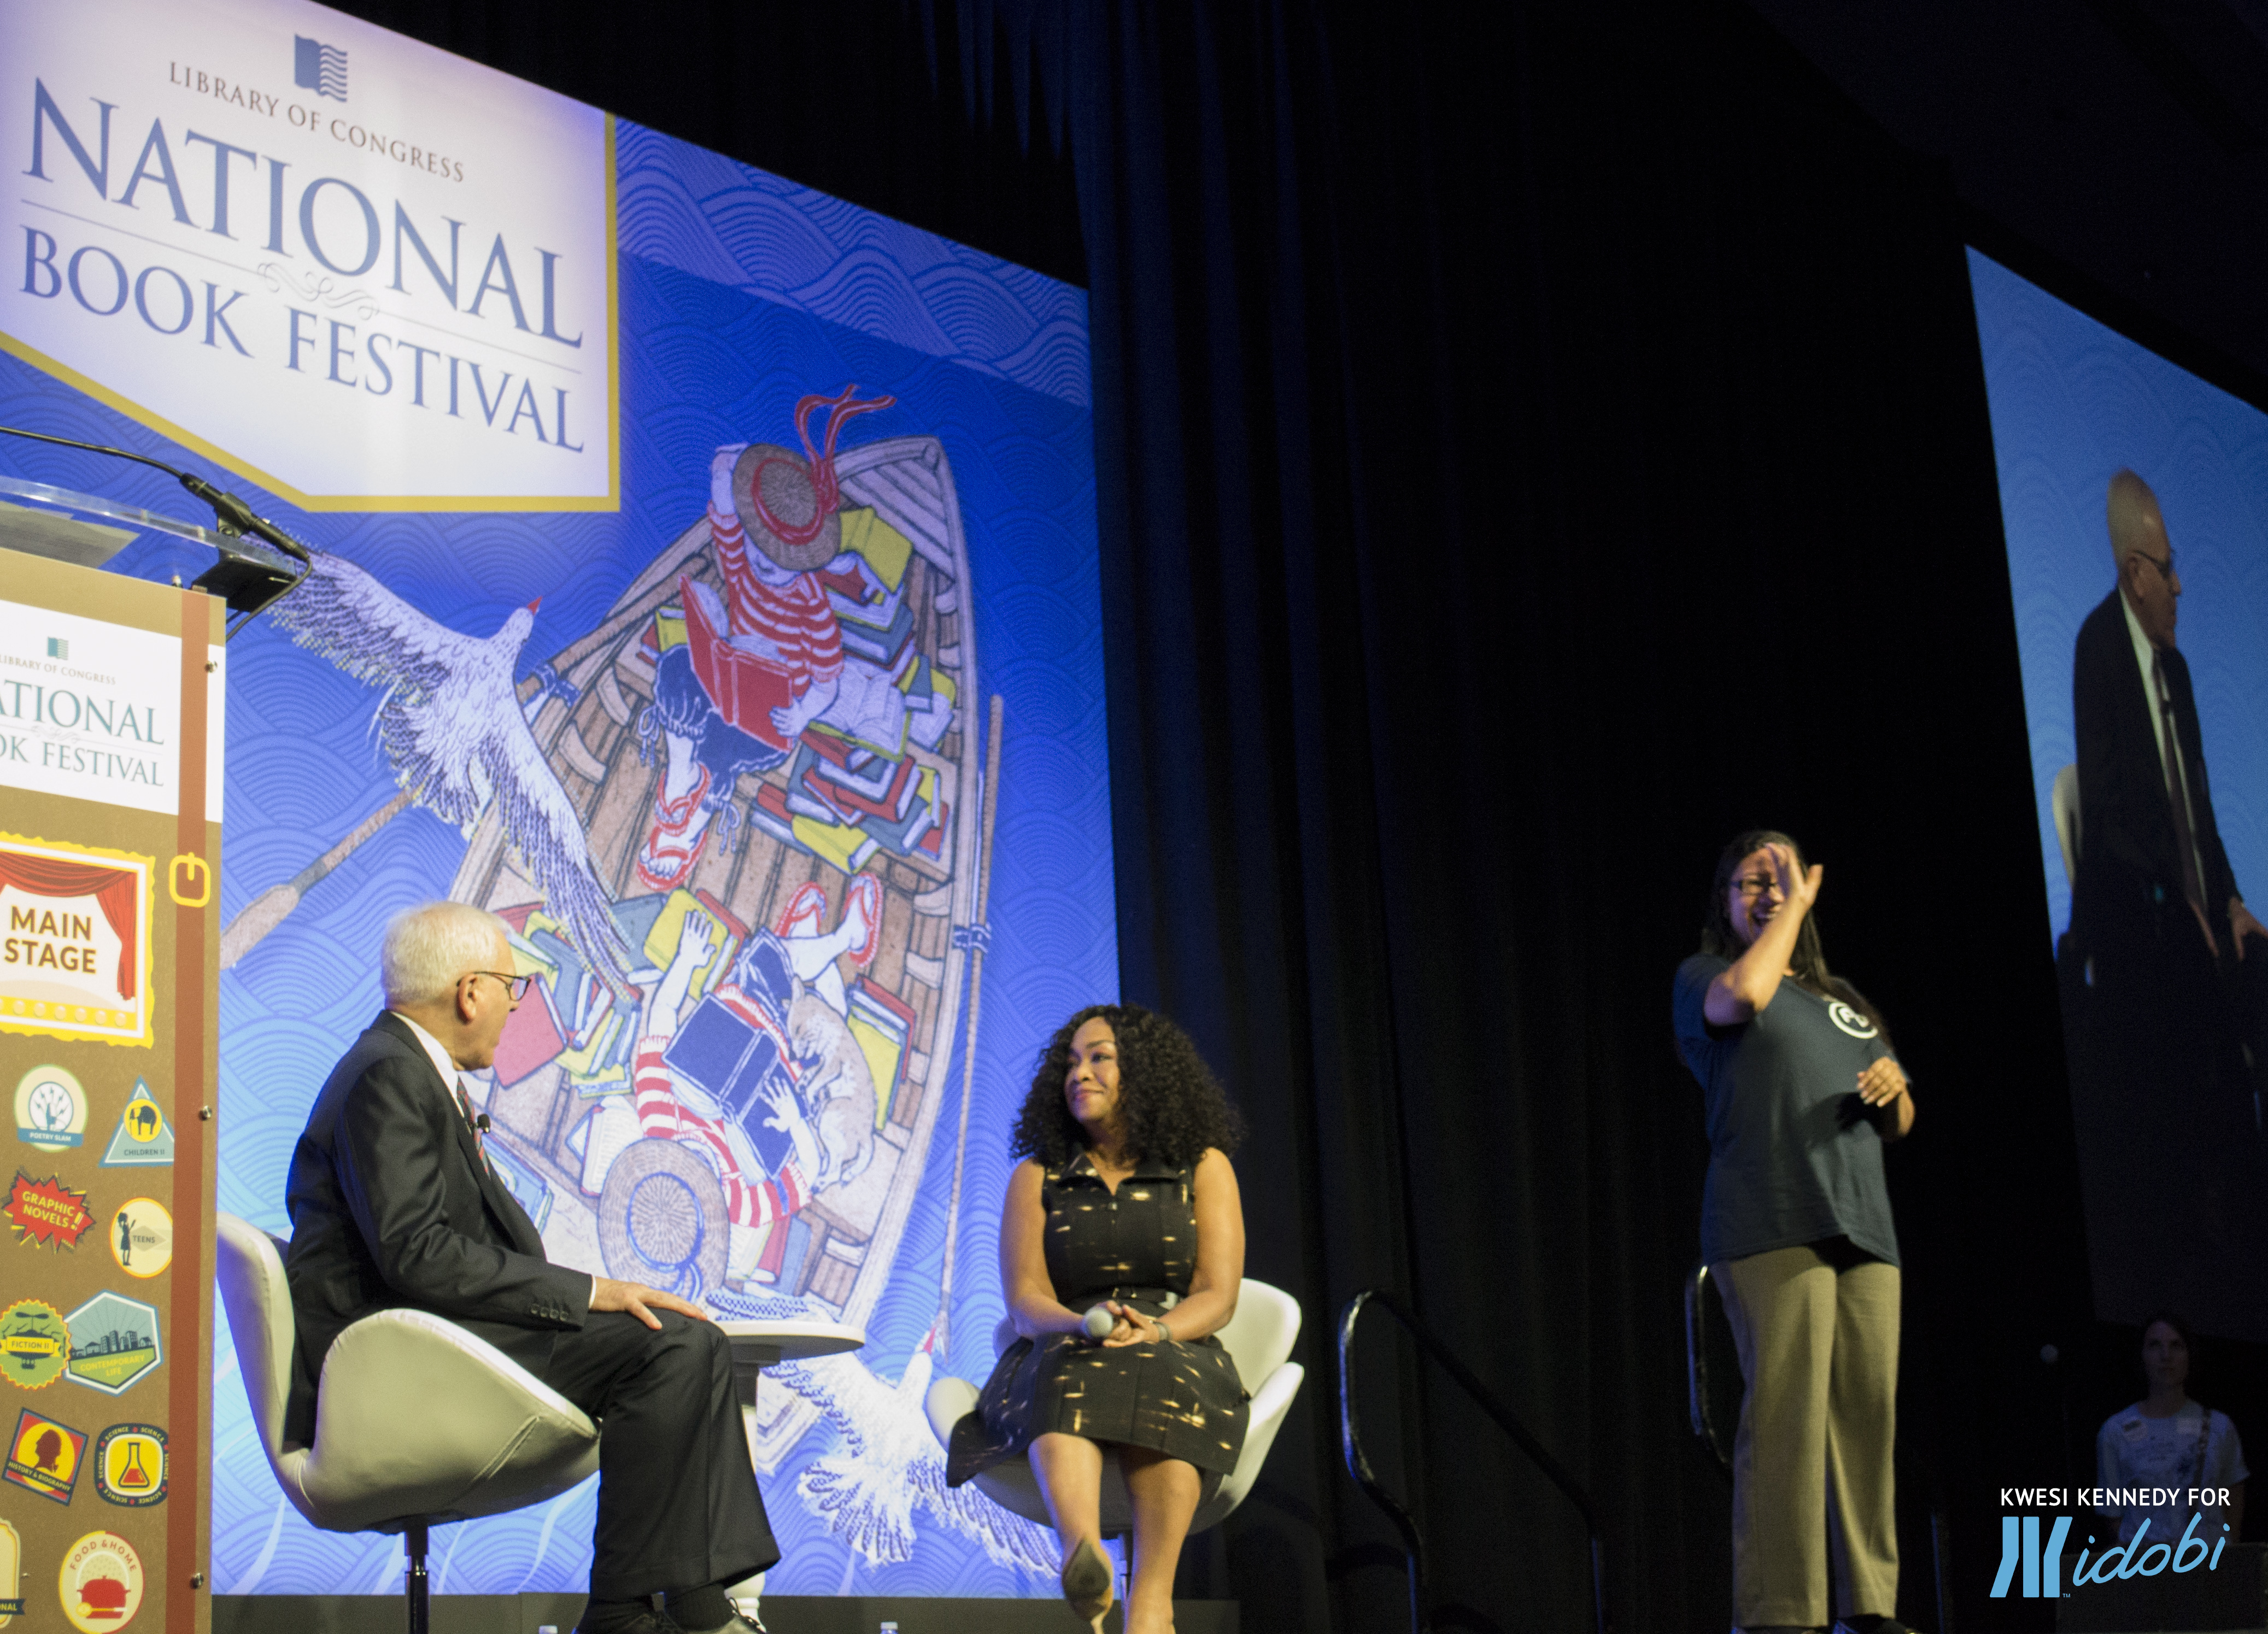 Shonda Rhimes at the National Book Festival in conversation with David M. Rubenstein, along with a fabulous ASL interpreter!